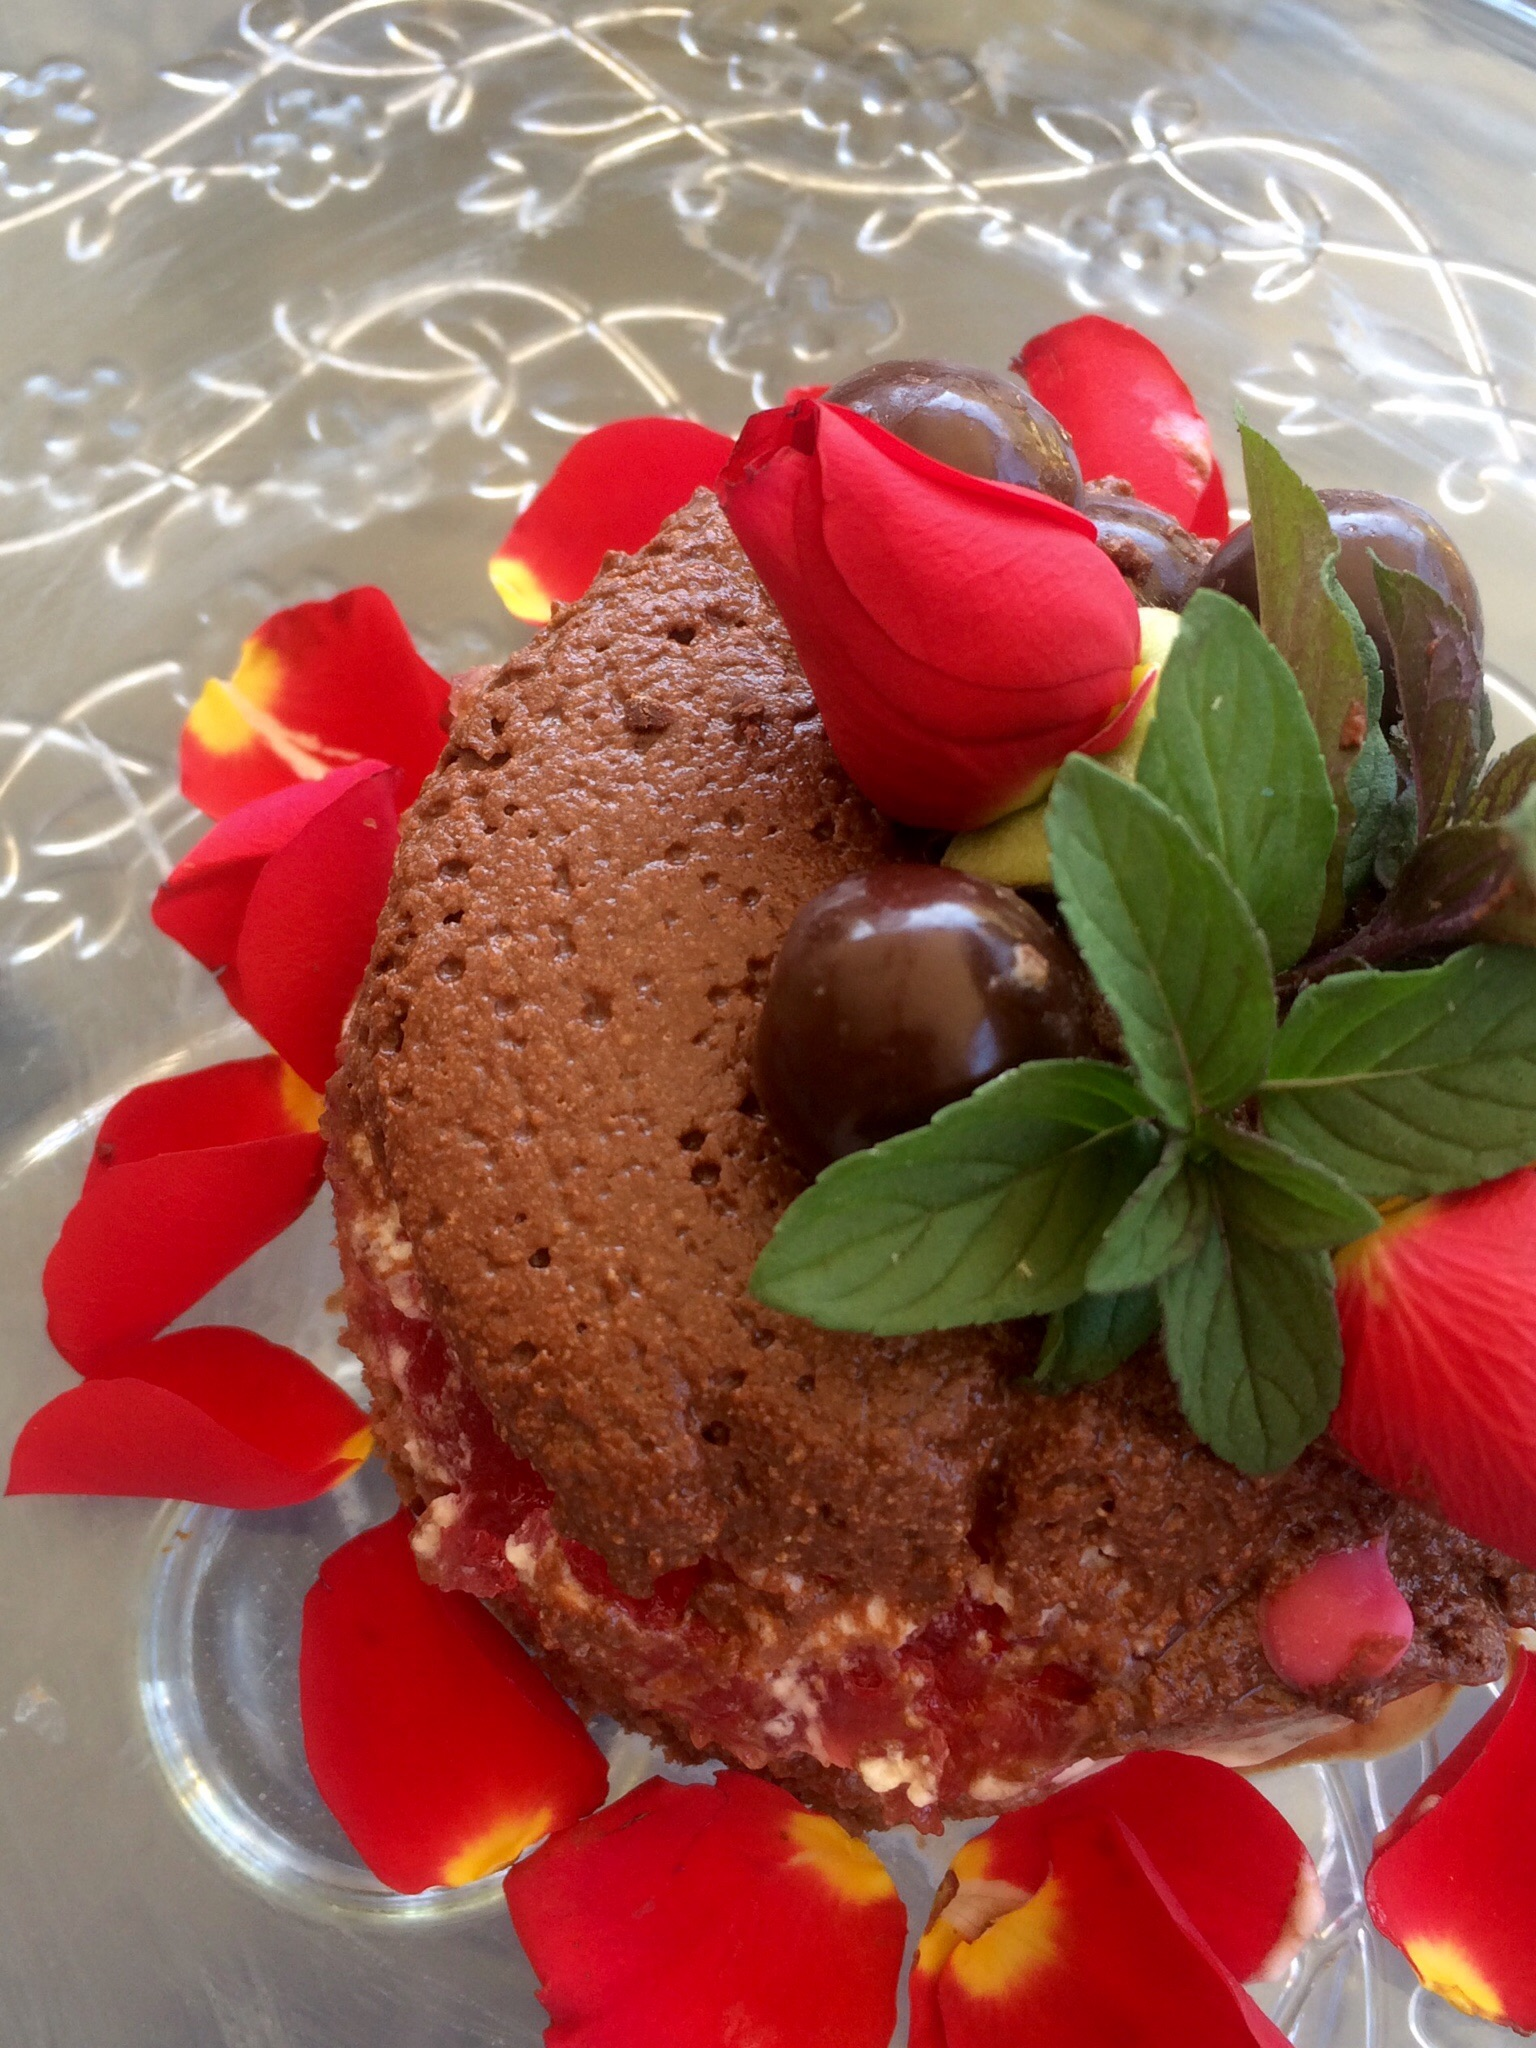 Mousse chocolate con rosas y menta